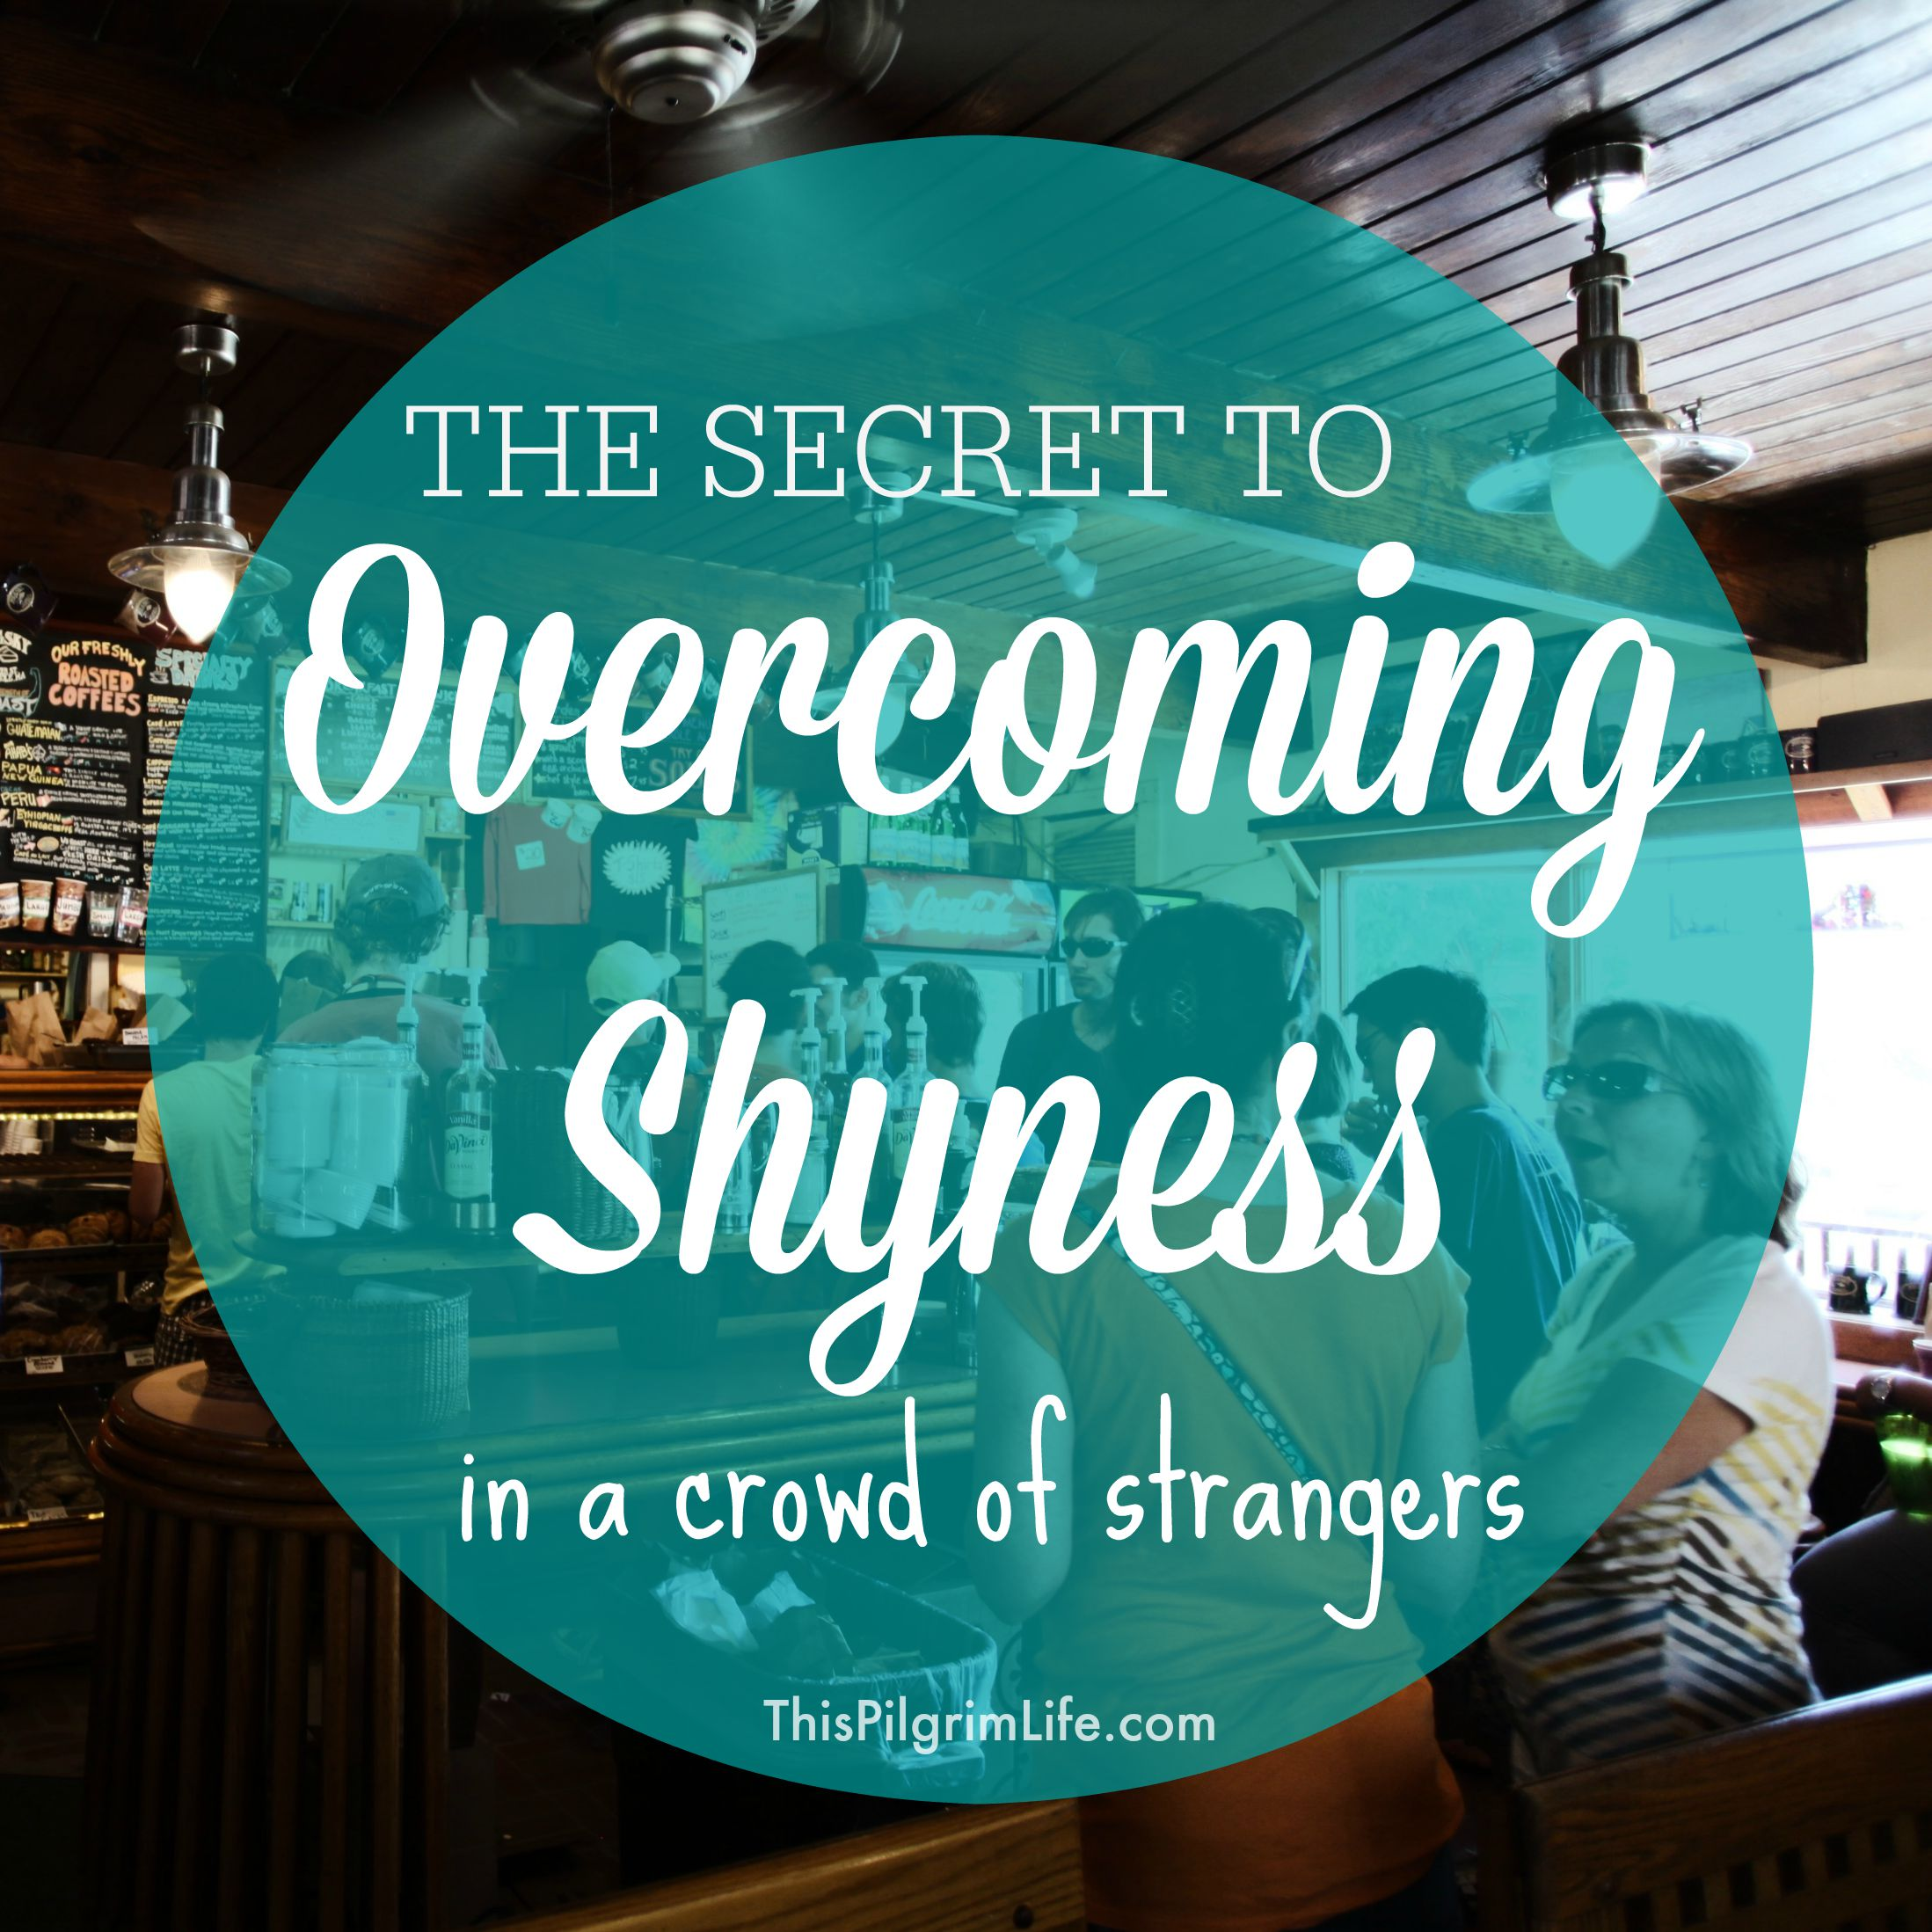 The Secret to Overcoming Shyness in A Crowd of Strangers